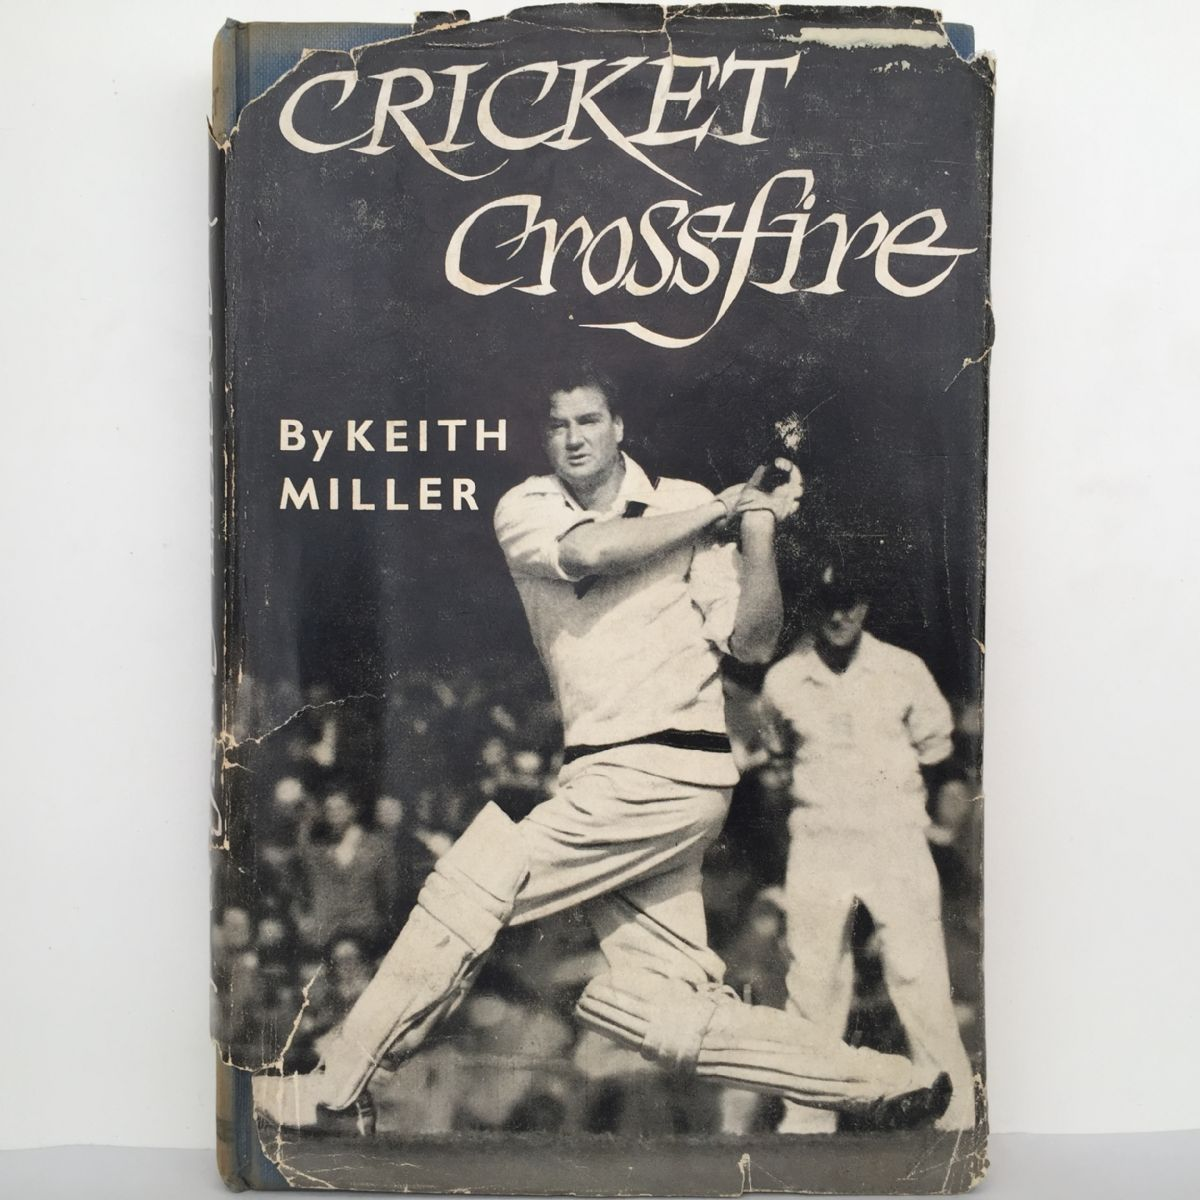 Cricket Crossfire